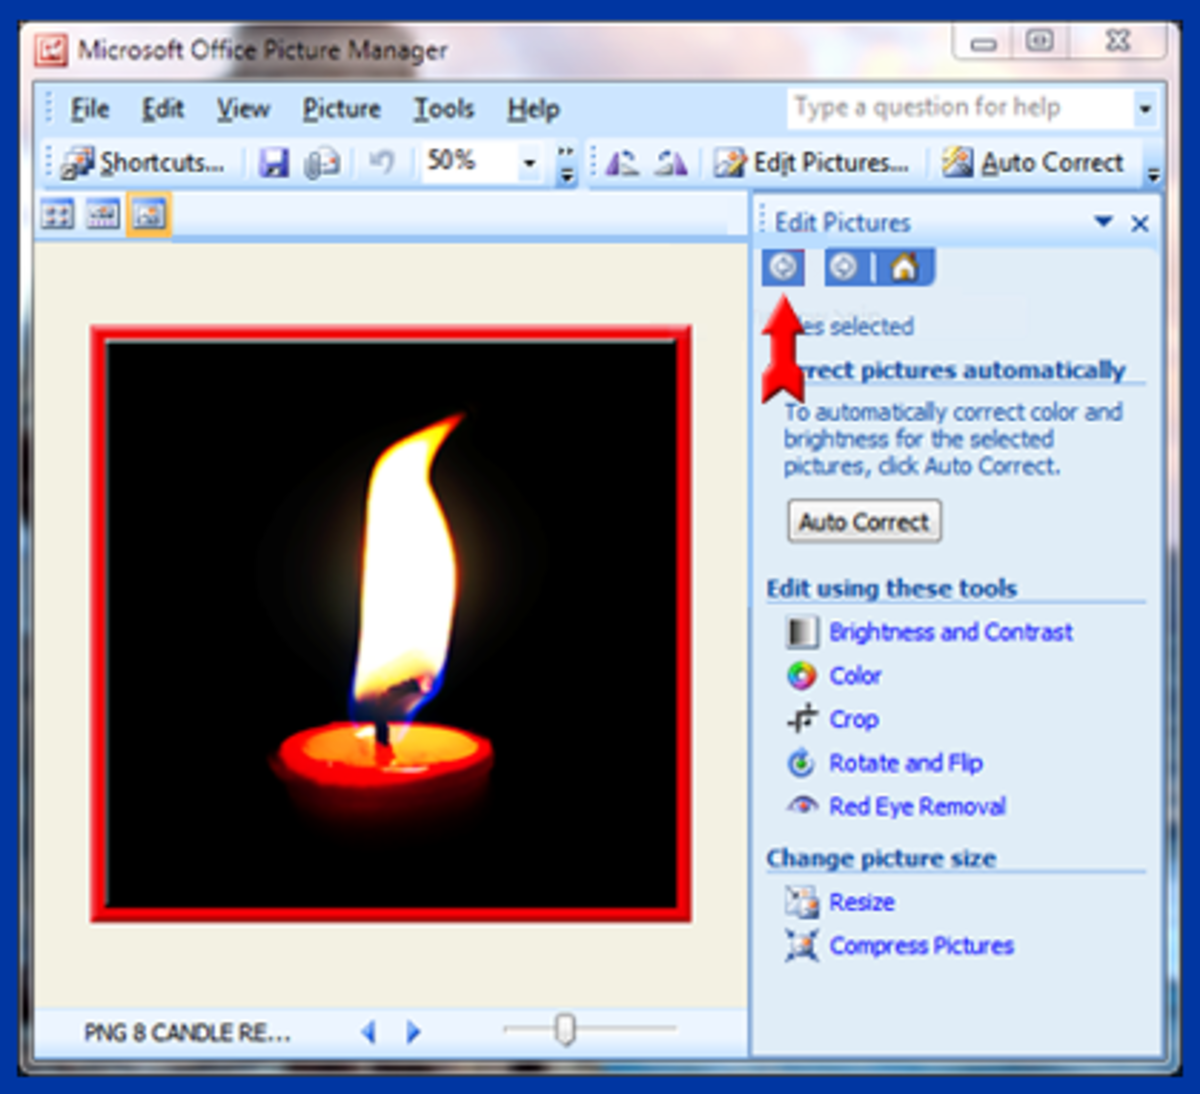 Screenshot 8. Back arrow for navigation in Microsoft Picture Manager.